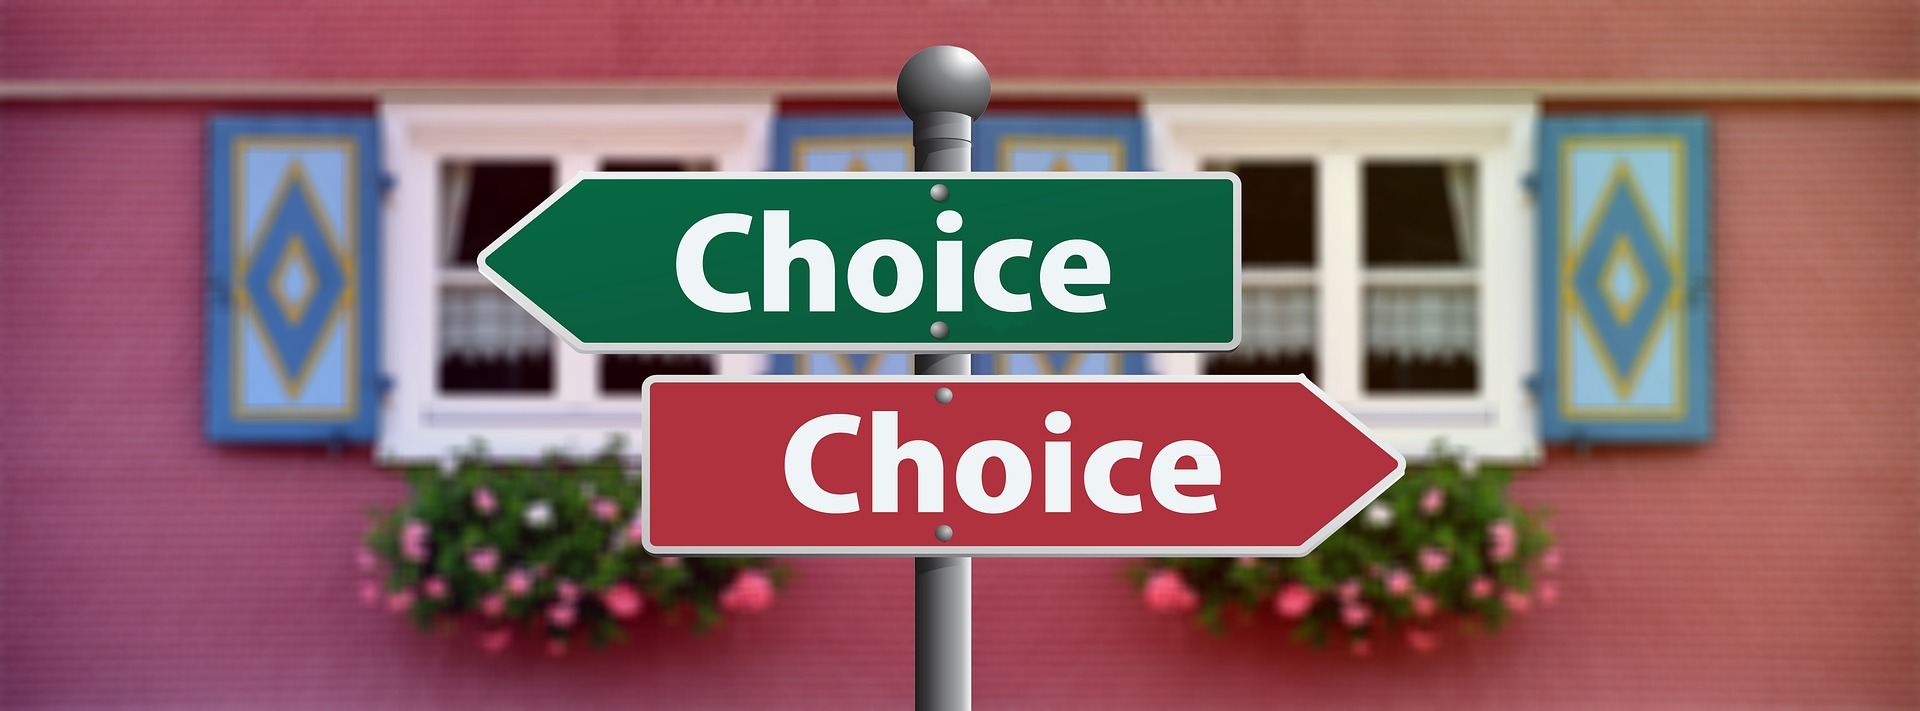 Multiple-job-offers-two-arrows-pointing-opposite-directions-signifying-multiple-offers